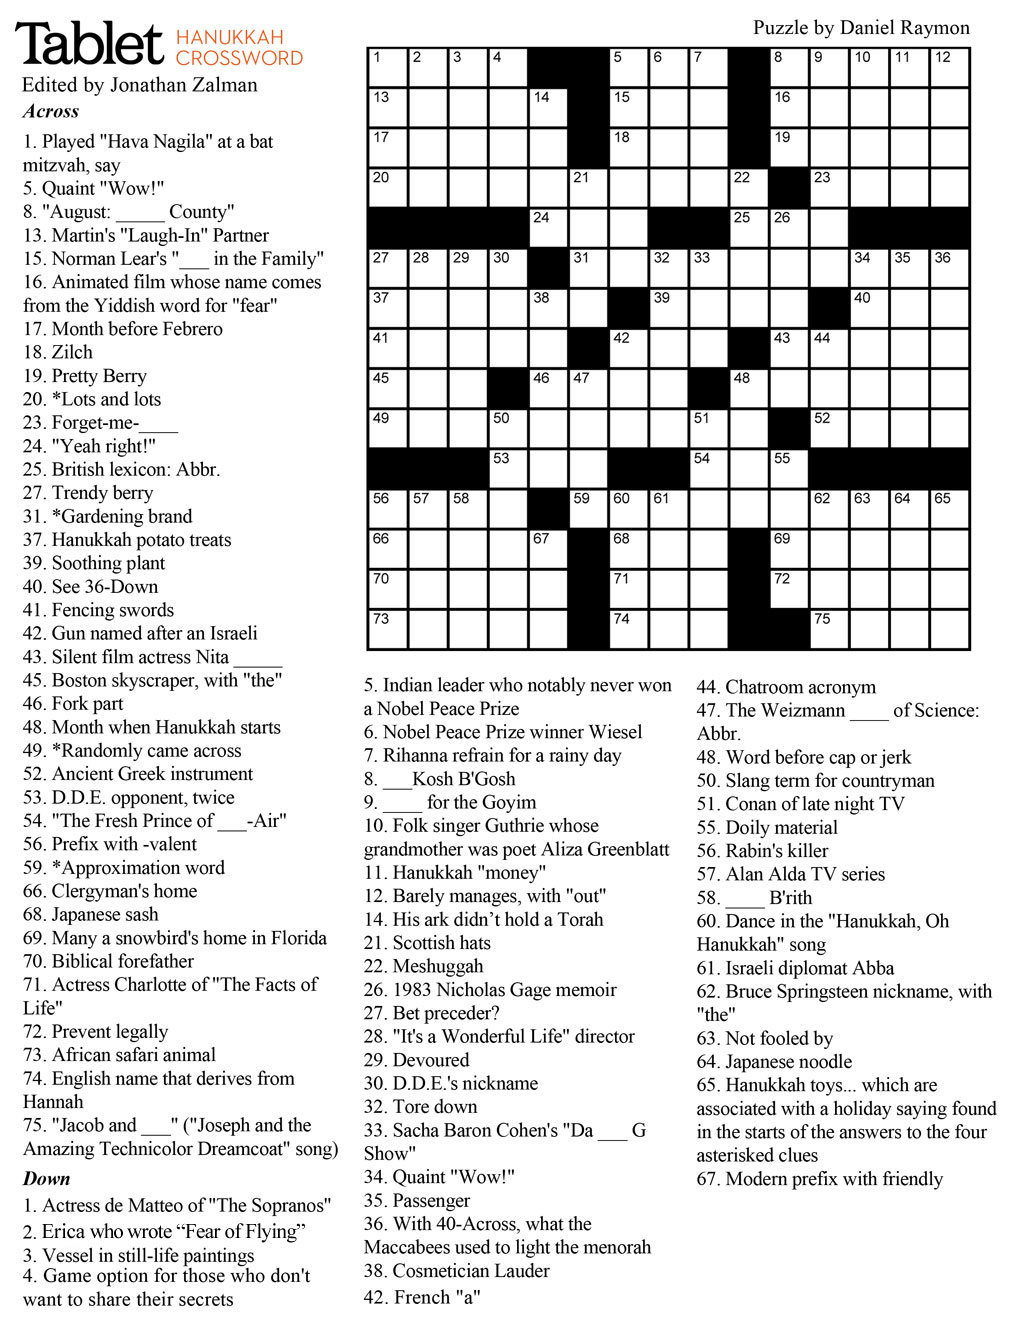 Wind Down With Our Hanukkah Crossword Puzzle! – Tablet Magazine - Reading Crossword Puzzles Printable